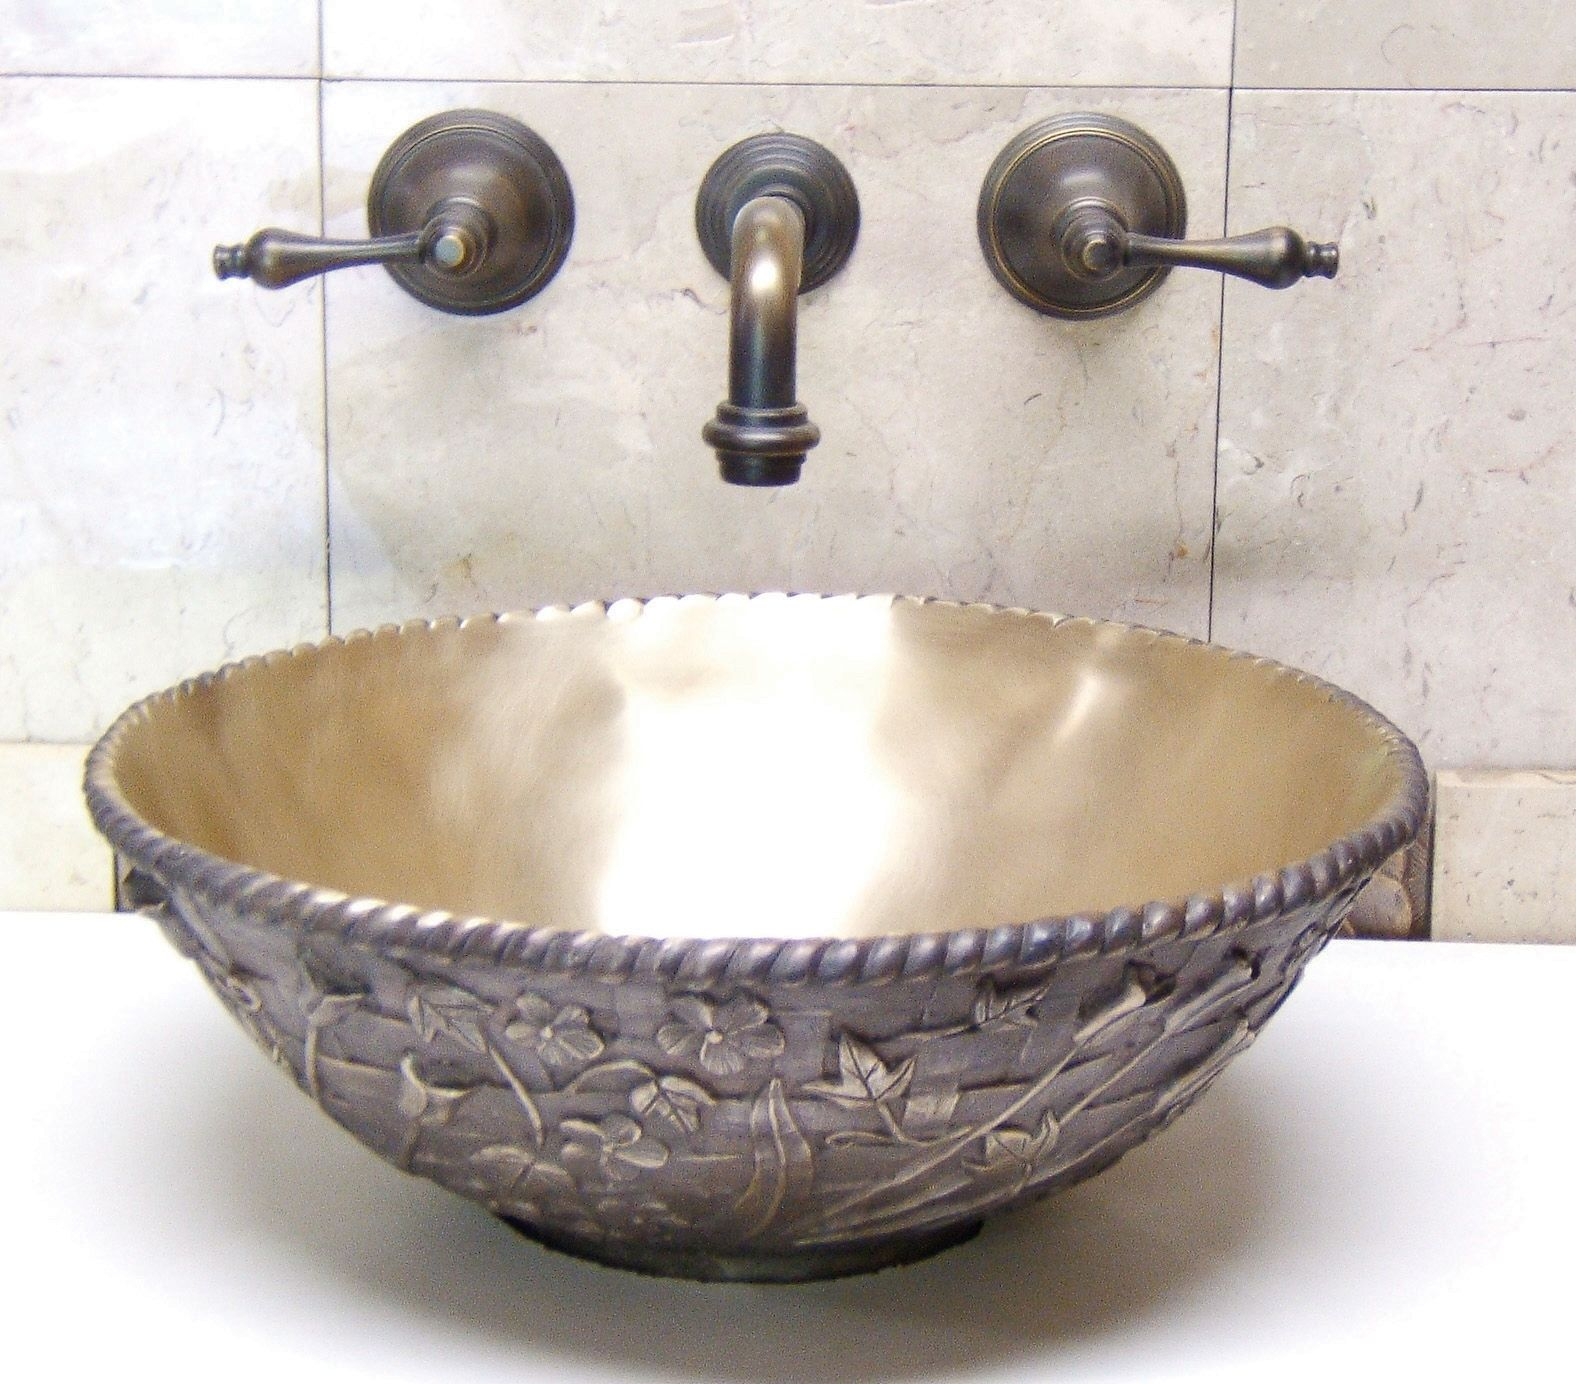 unique sinks | connie deamond interior creations: unusual sinks